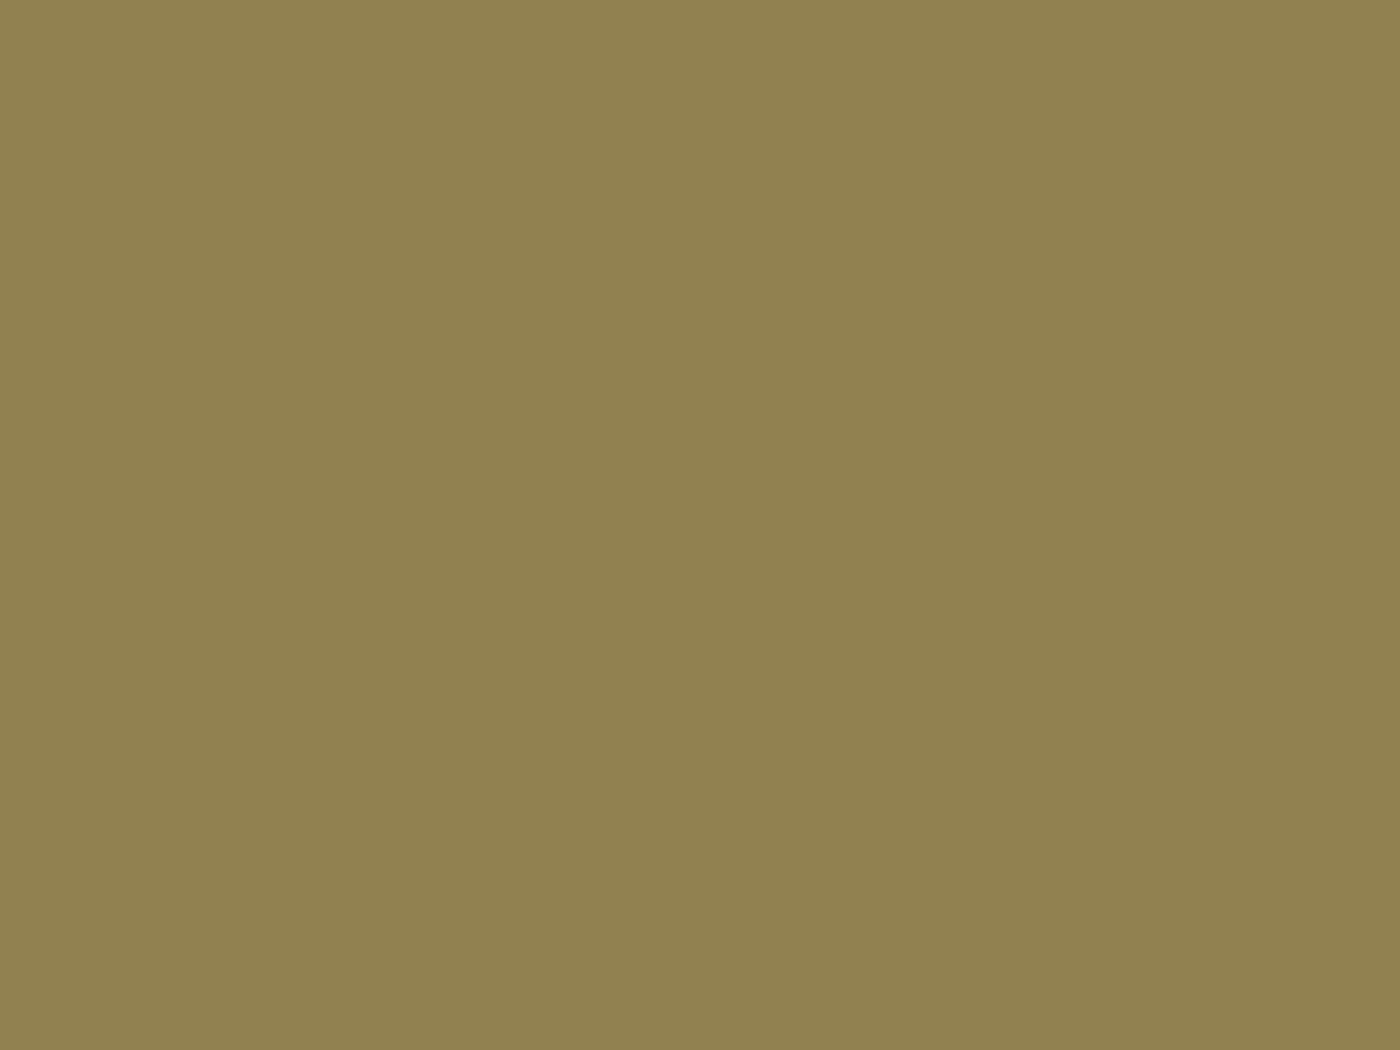 1400x1050 Dark Tan Solid Color Background